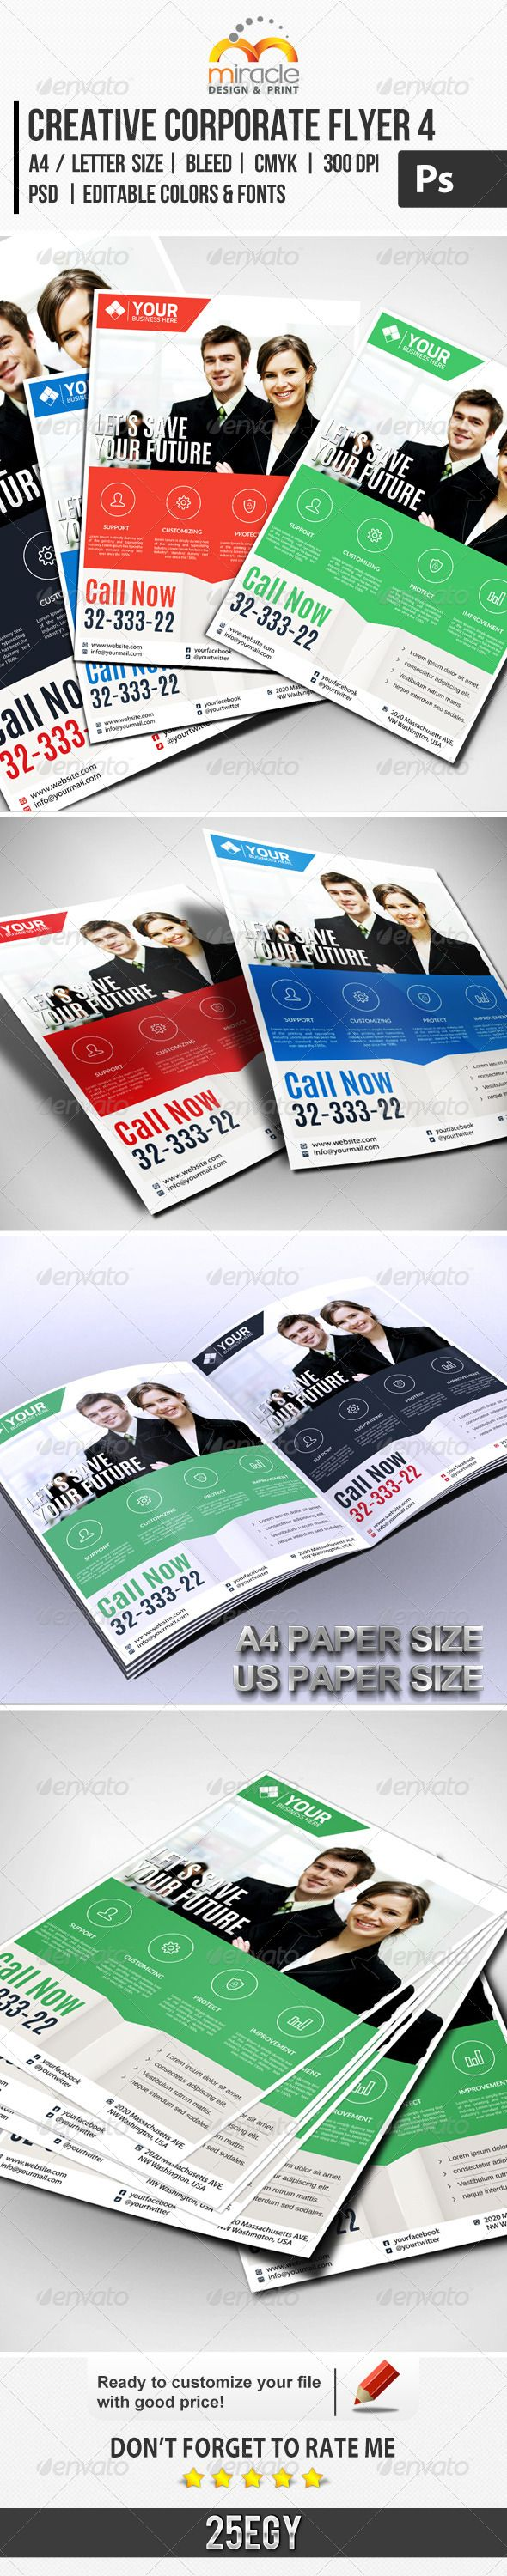 Creative Corporate Flyer 4 :   Check out this #creative #great #corporate #flyer…